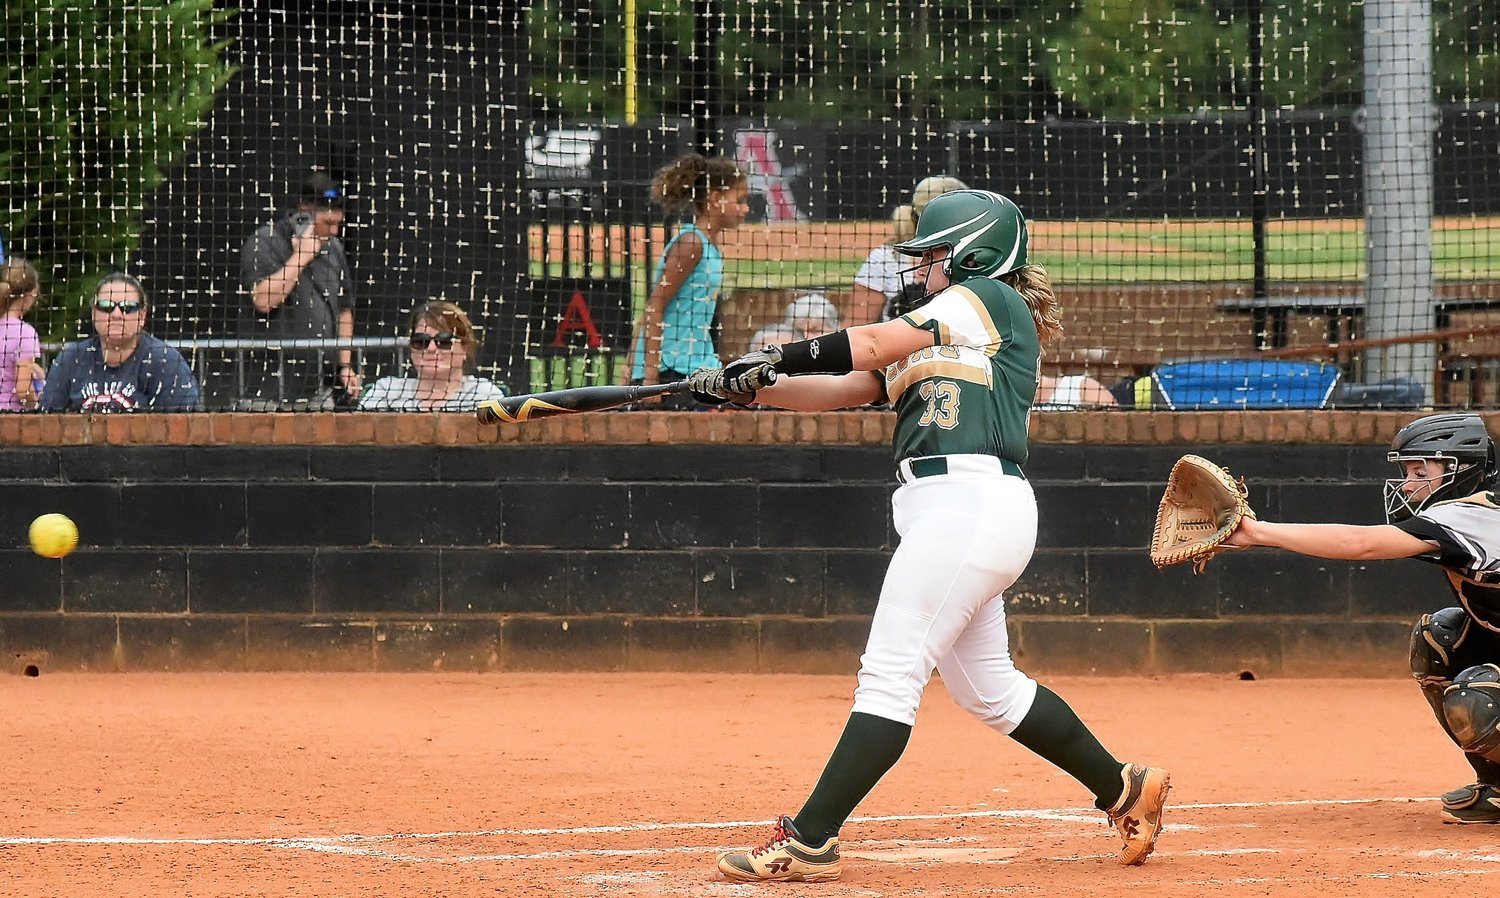 Adairsville junior Victoria O'Neal sends an RBI single through the infield to score the Tigers' third and final run in Wednesday's 11-3 road loss to Allatoona.